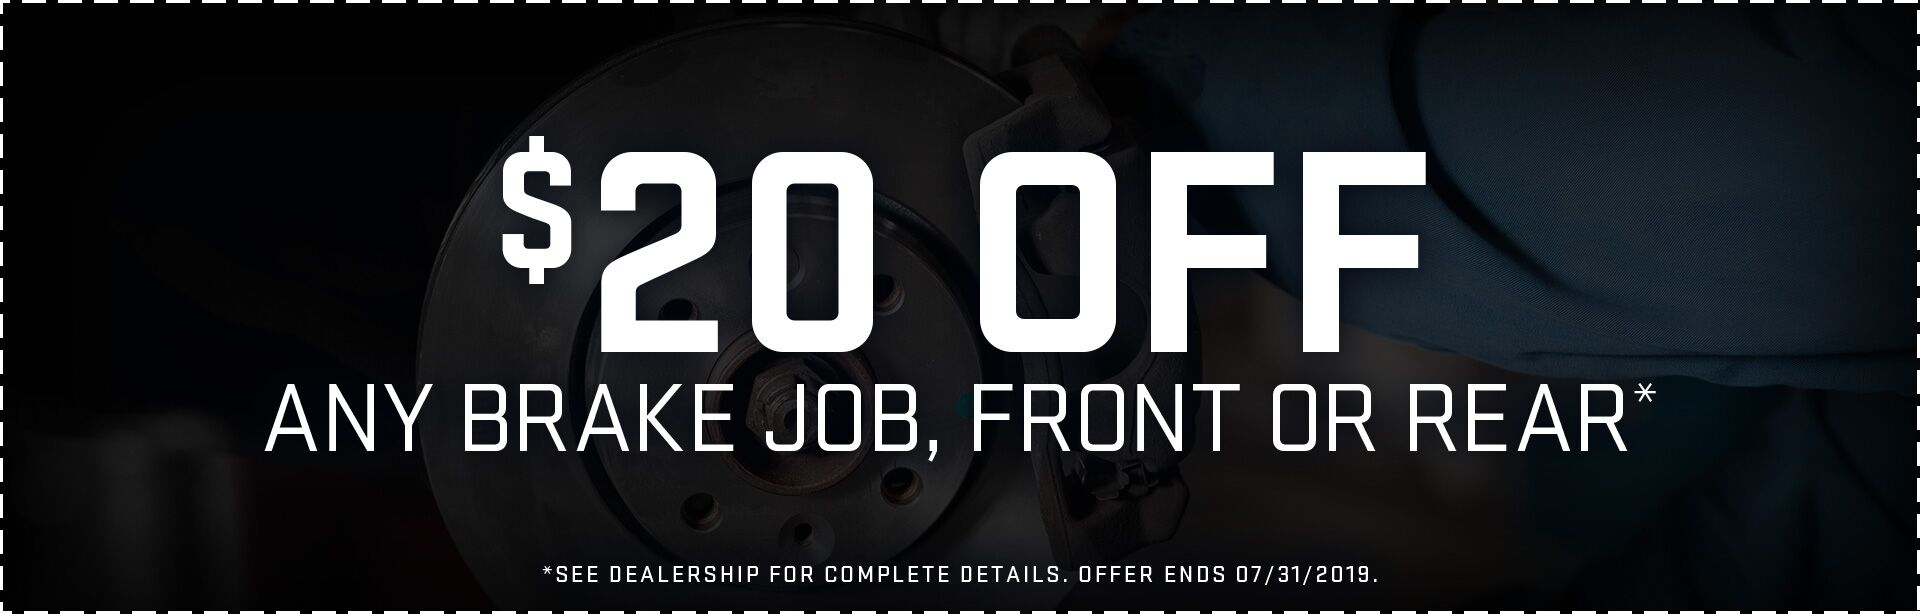 $20 Off Any Brake Job, Front or Rear